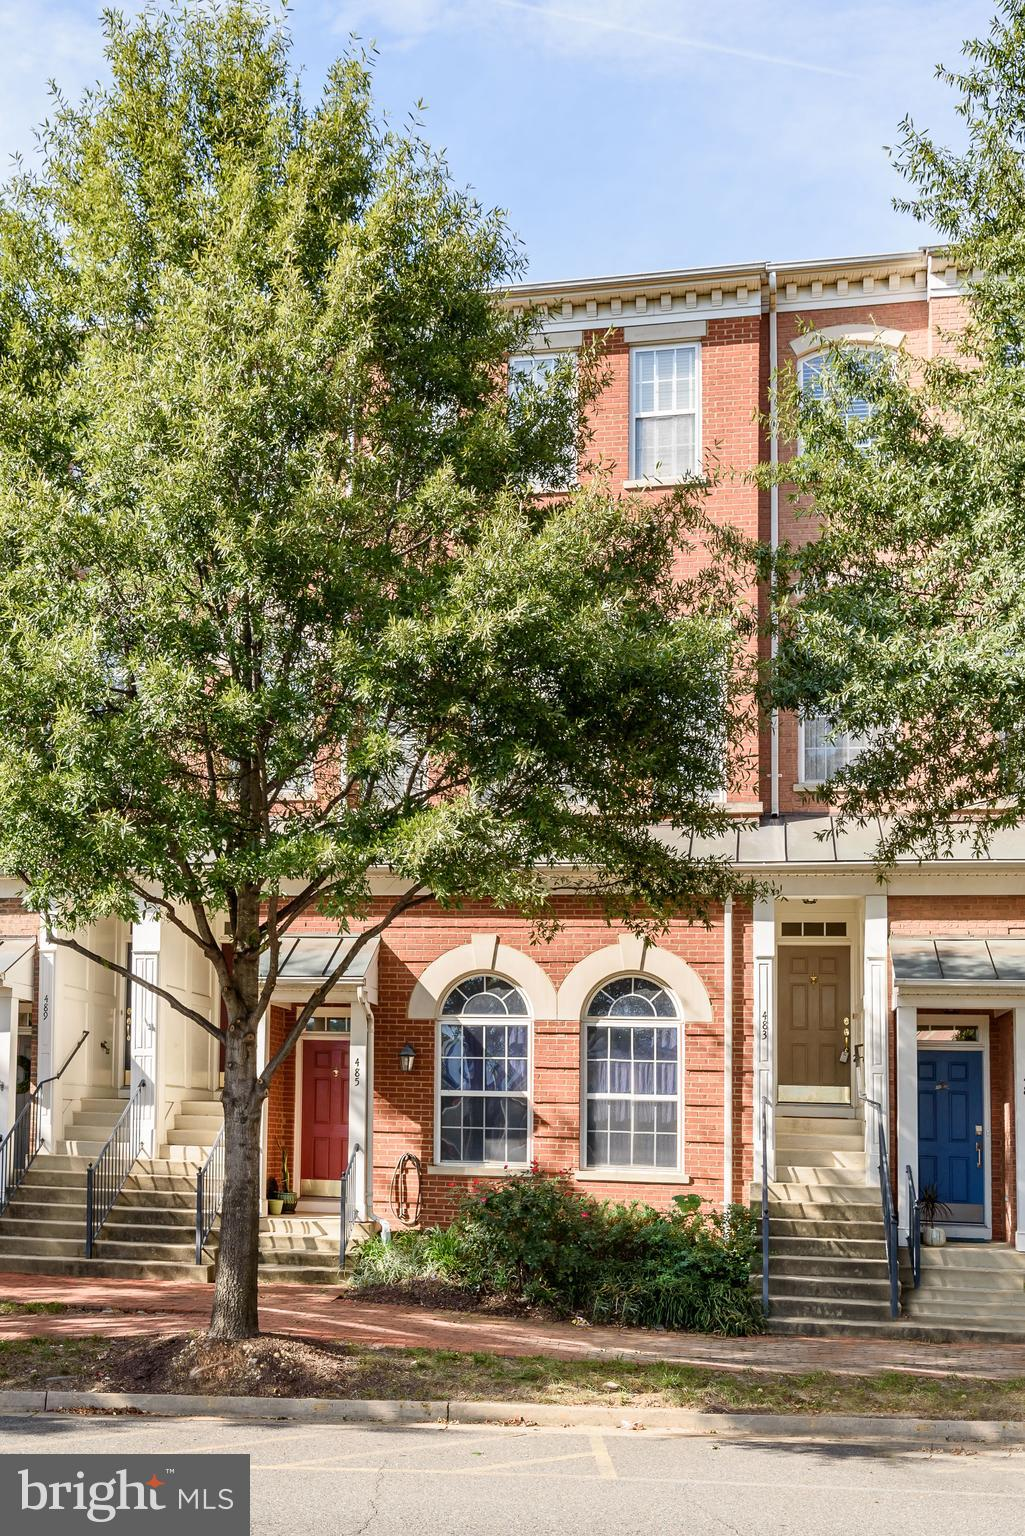 Accepting Backup Contracts .....Check out the New Price! Freshly Painted Top to Bottom !Upscale with hardwood floors, gorgeous owners bath & bedroom overlooking Park! Open floor plan & space galore. Spacious  Custom closets, garage plus off street parking. Soaring ceilings, Granite counters, Fireplace & Sun Filled throughout. Walking trails, parks, club house, pool & fitness center. SHUTTLE TO METRO !!! Seller contributes $3,000 in closing costs and doubles the contribution to $6,000 when using Greg Everett at Sandy Spring Bank. See agent for details.......